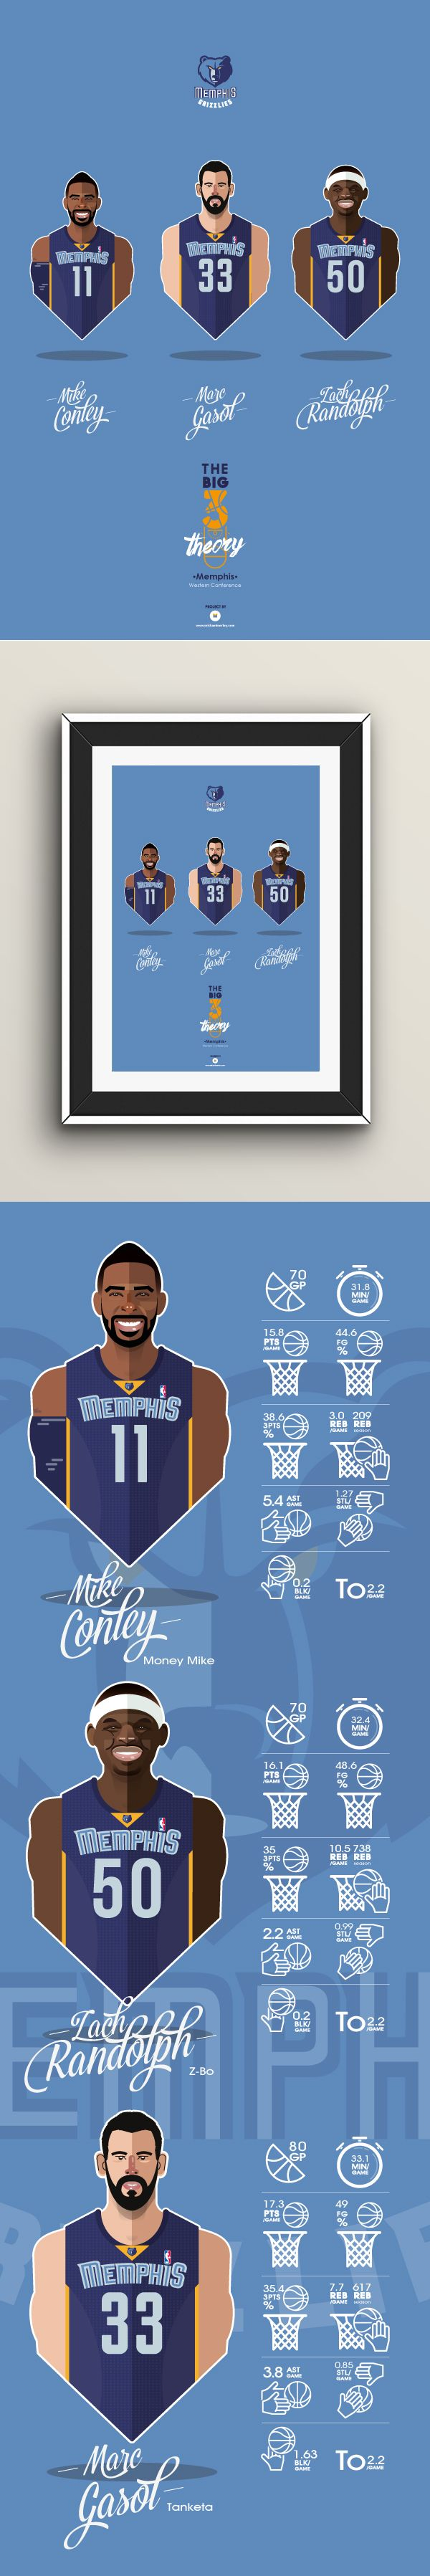 #NBA #players #GRIZZLIES #Memphis #vector face Big Men Big 3 #playoffs sport basketball illustration #Gasol #Conley #Randolph